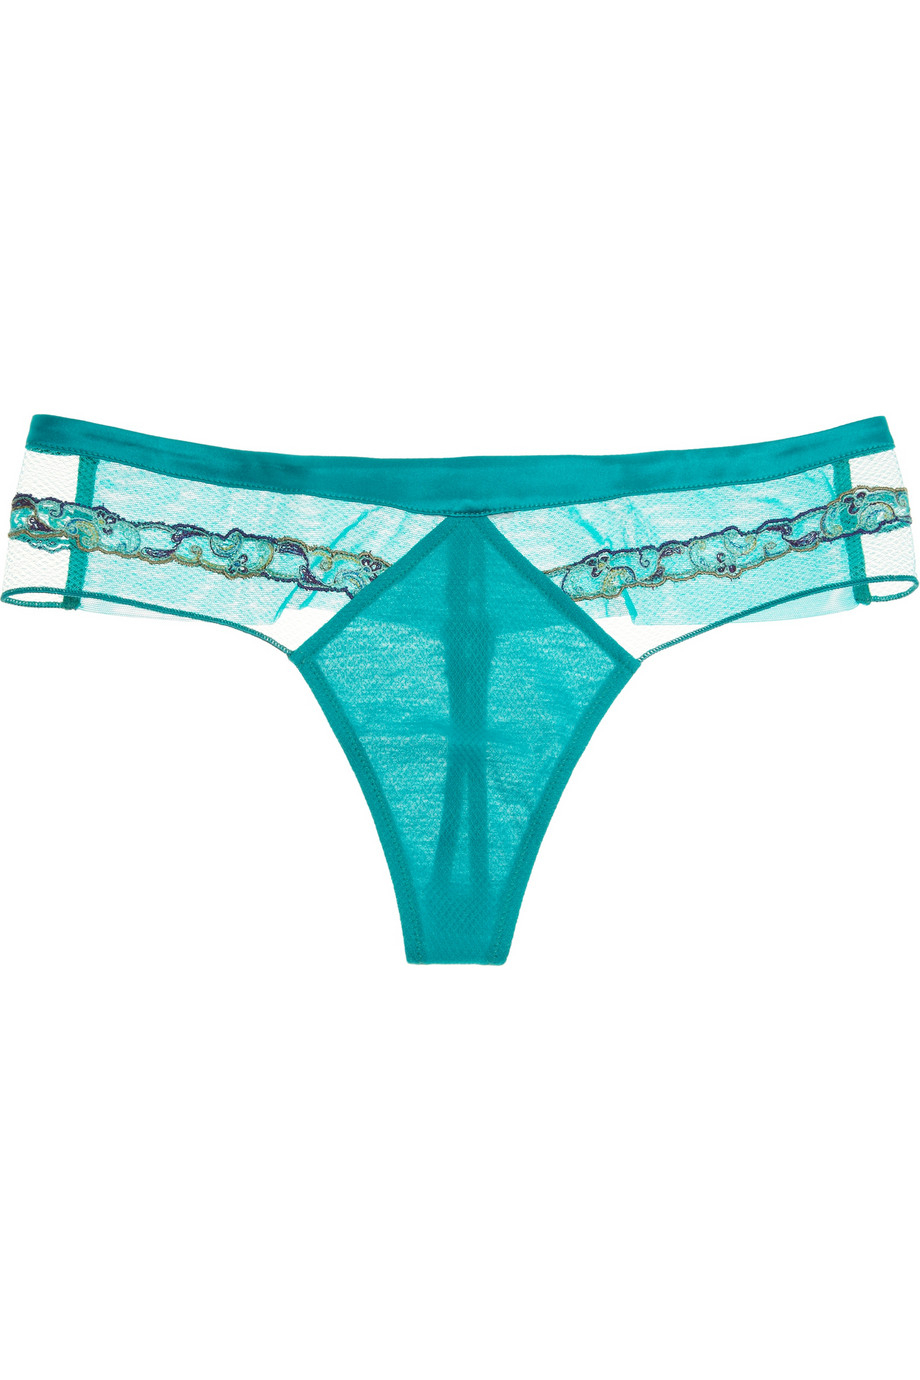 La Perla Paisley Embroidered Tulle And Silk Thong In Green